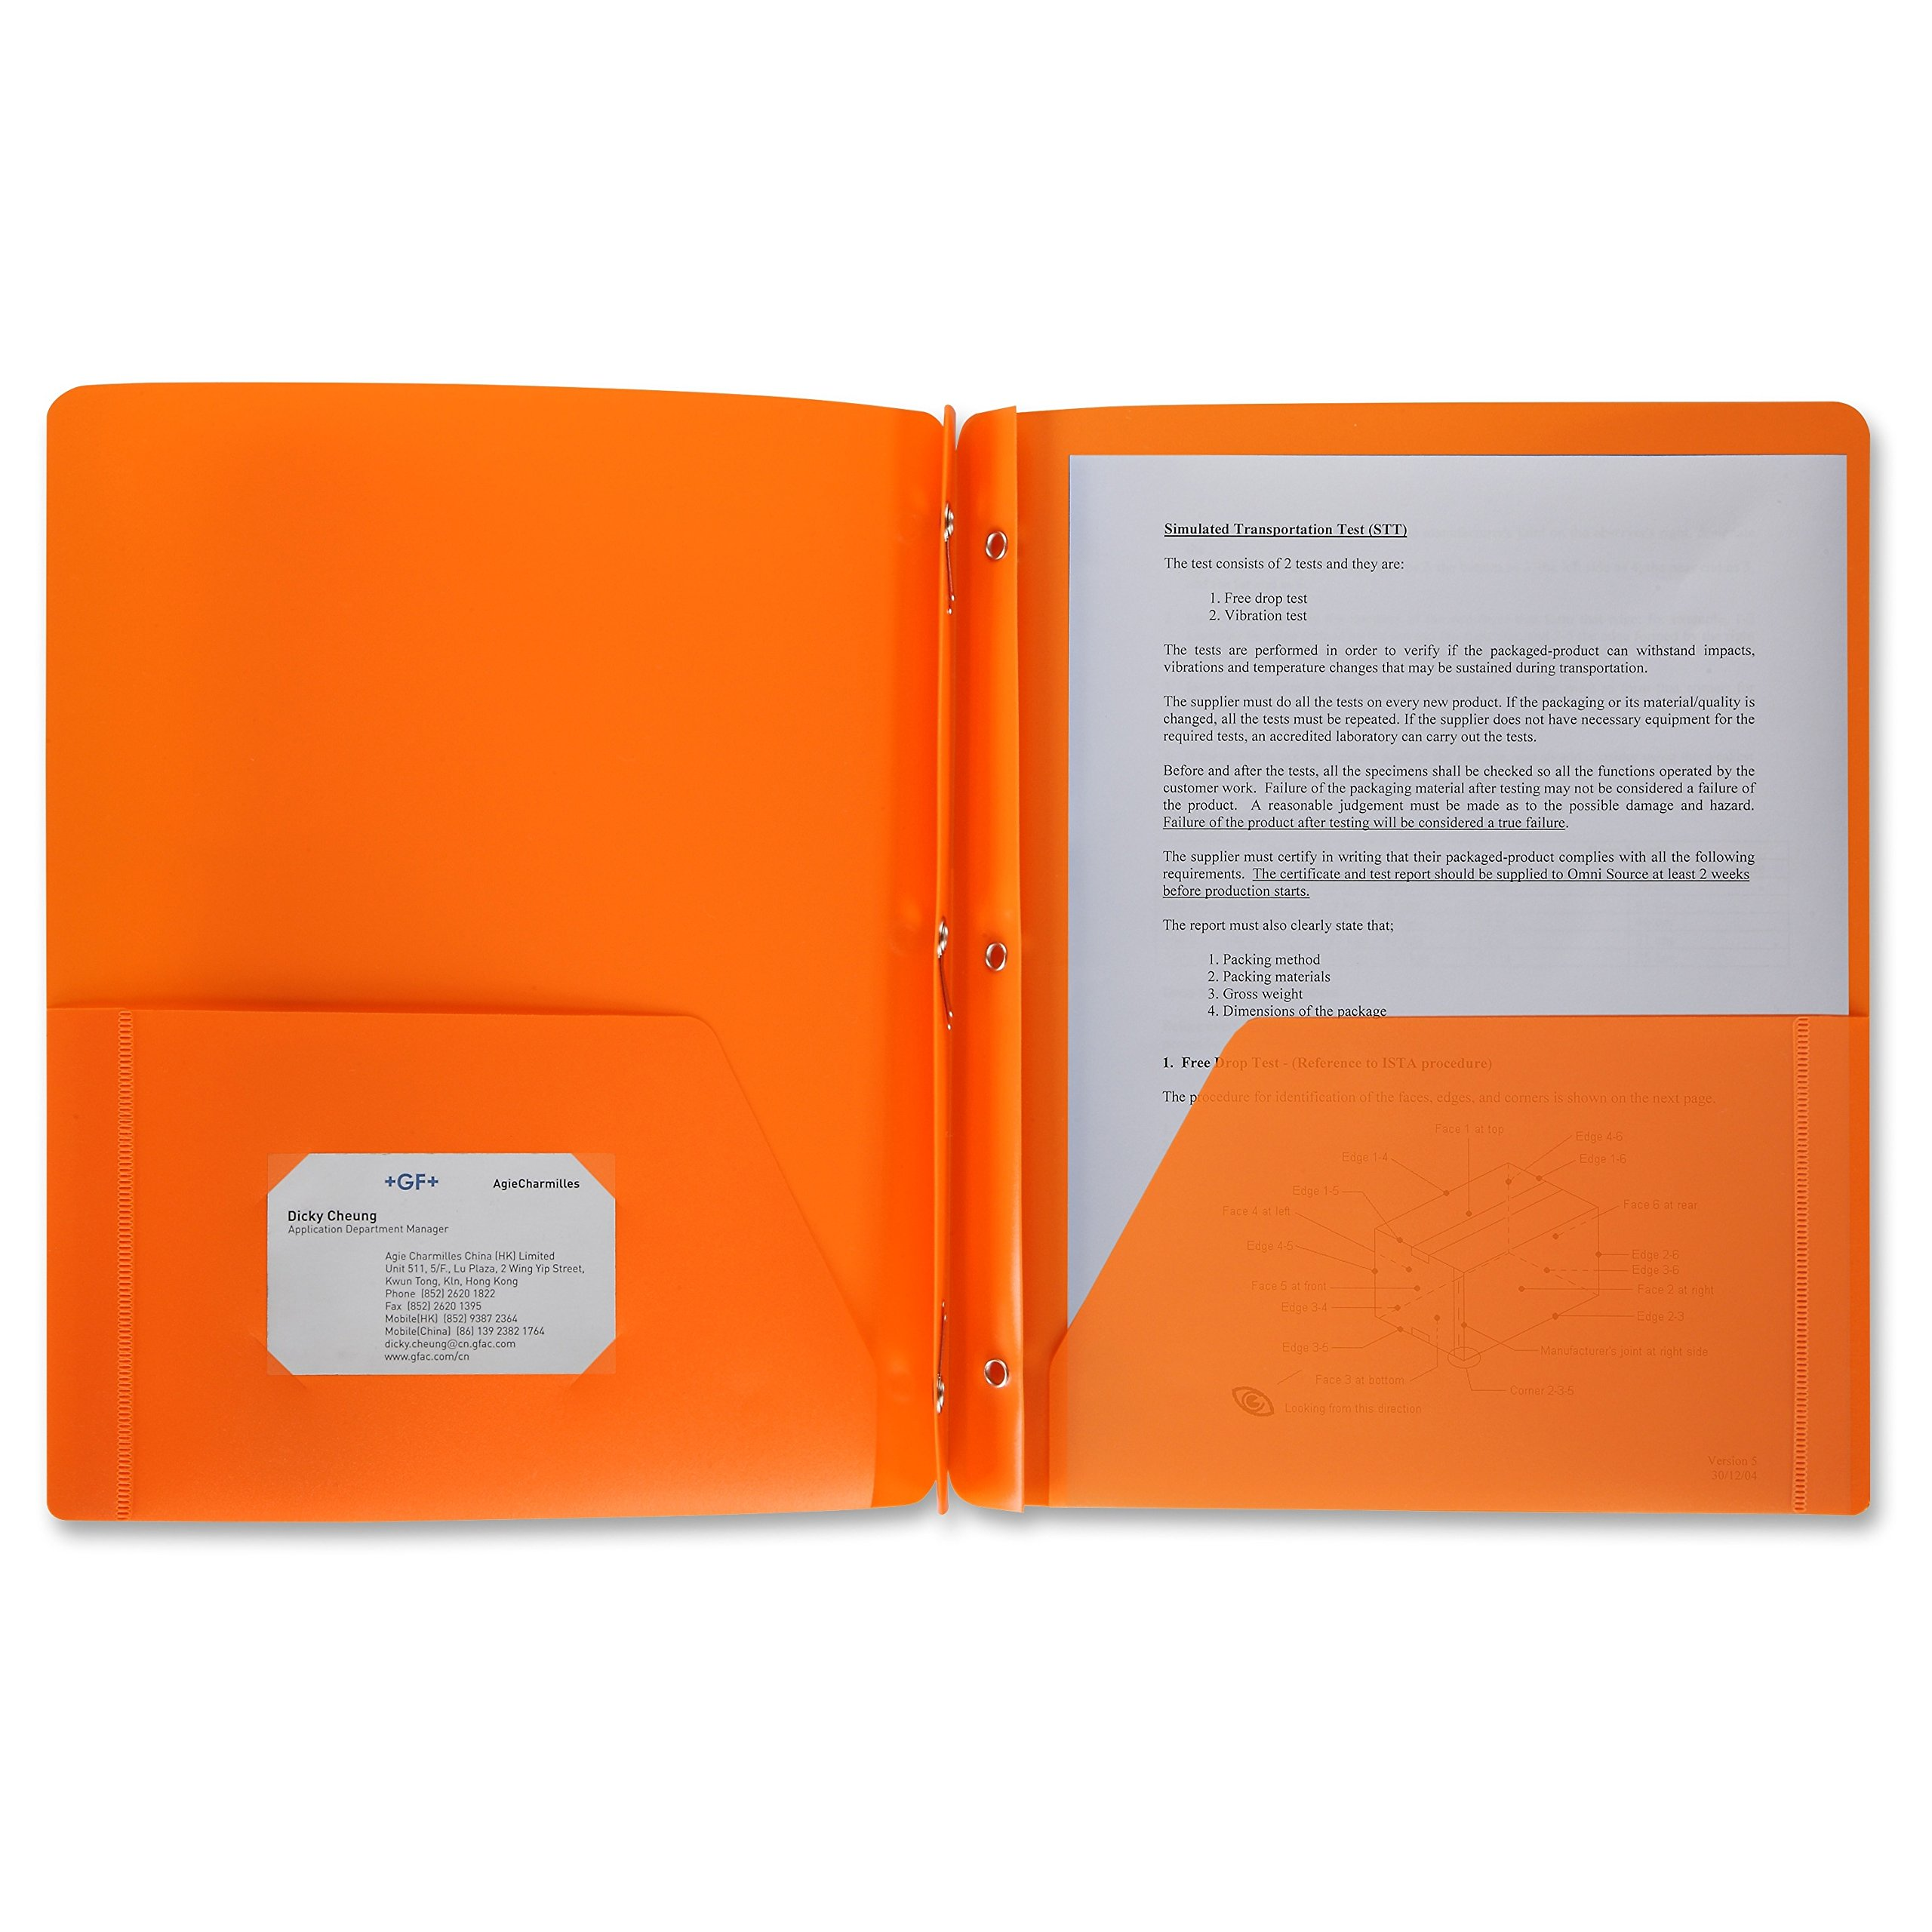 24 Pack Poly Plastic Portfolio School Folder Report Covers, 3 Hole Punched with Prongs, 8.5 x 11, Solid Colors, Durable, Spill Resistant/Water Resistant (Orange)